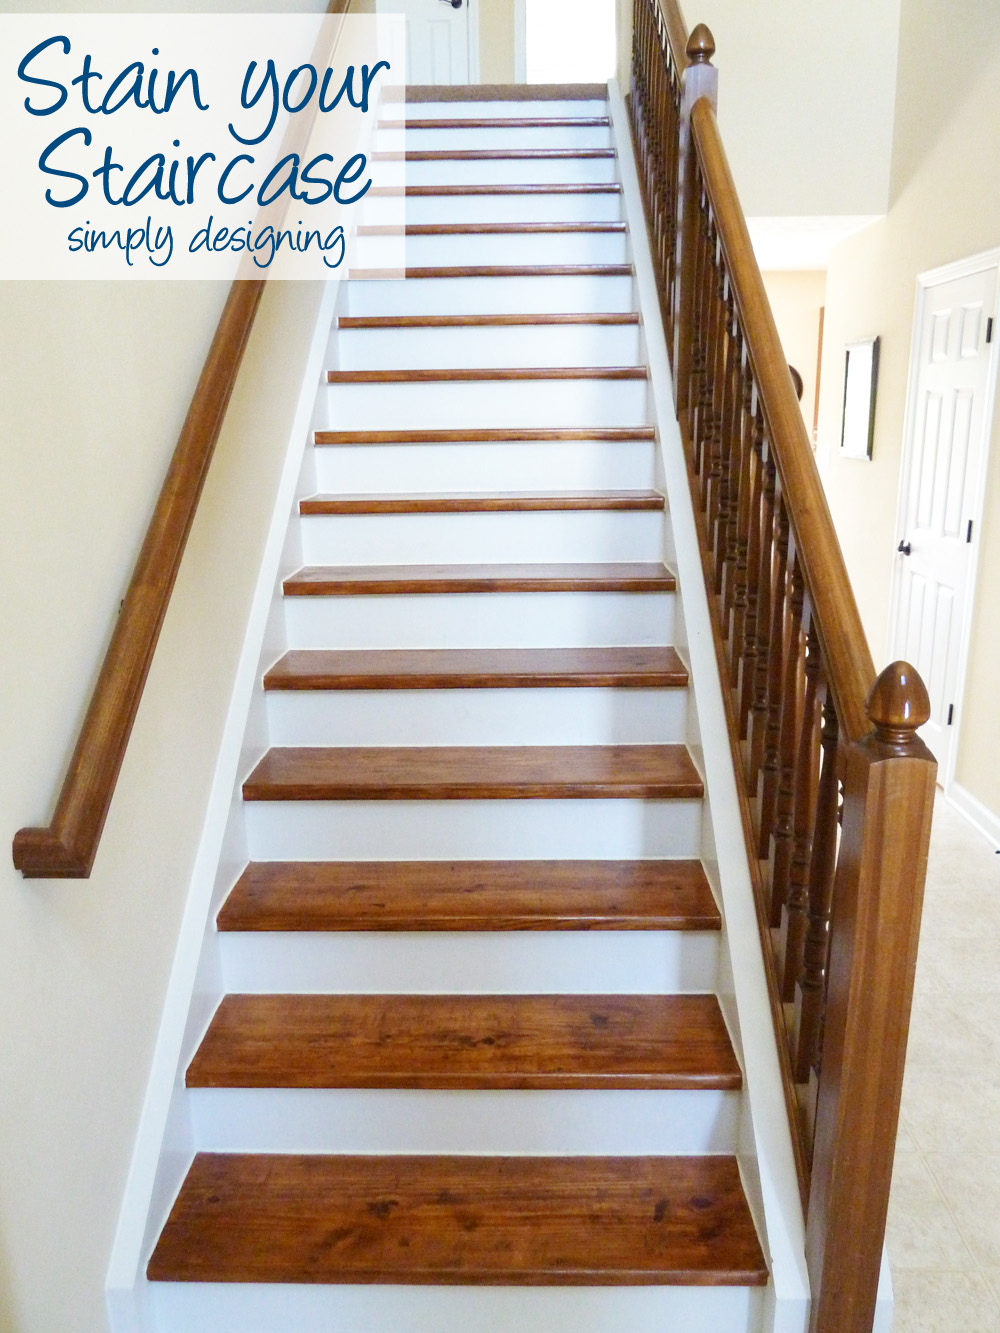 How To Stain Your Staircase | Step By Step Instructions On How To Rip Up  Carpet